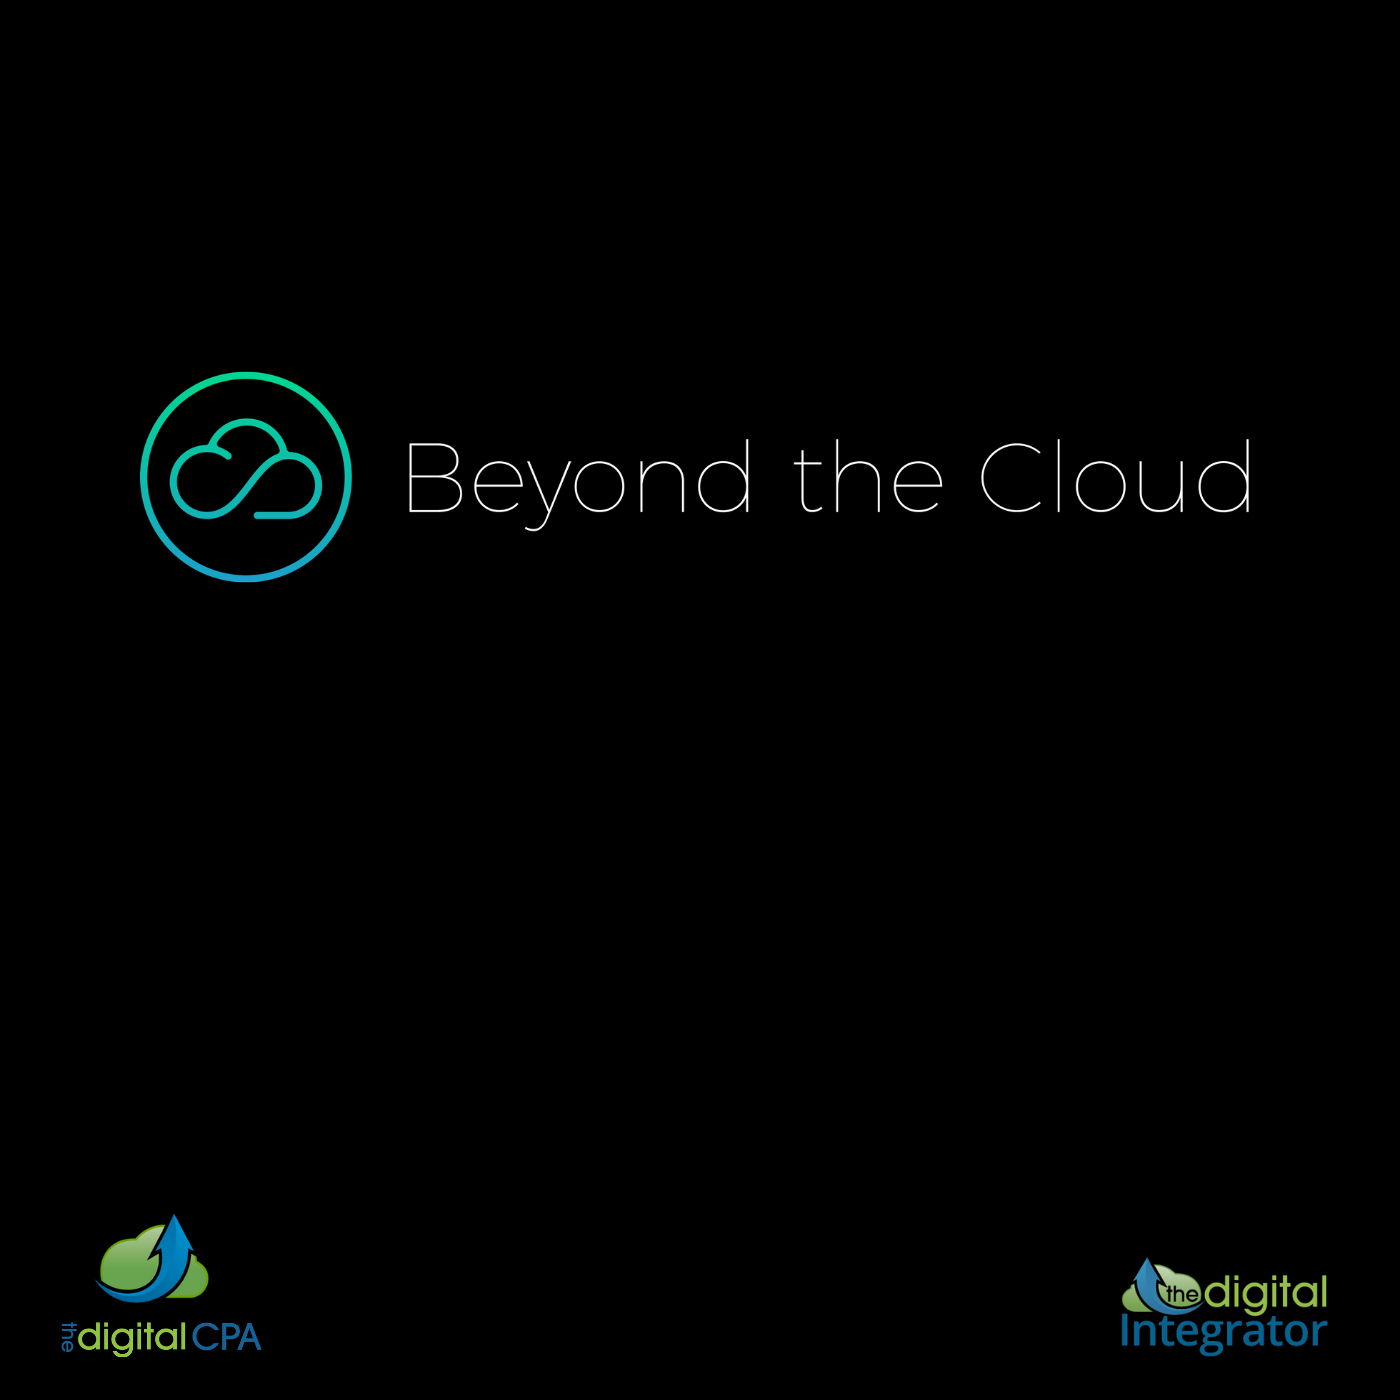 Beyond the Cloud Episode 1 - Back to Basics